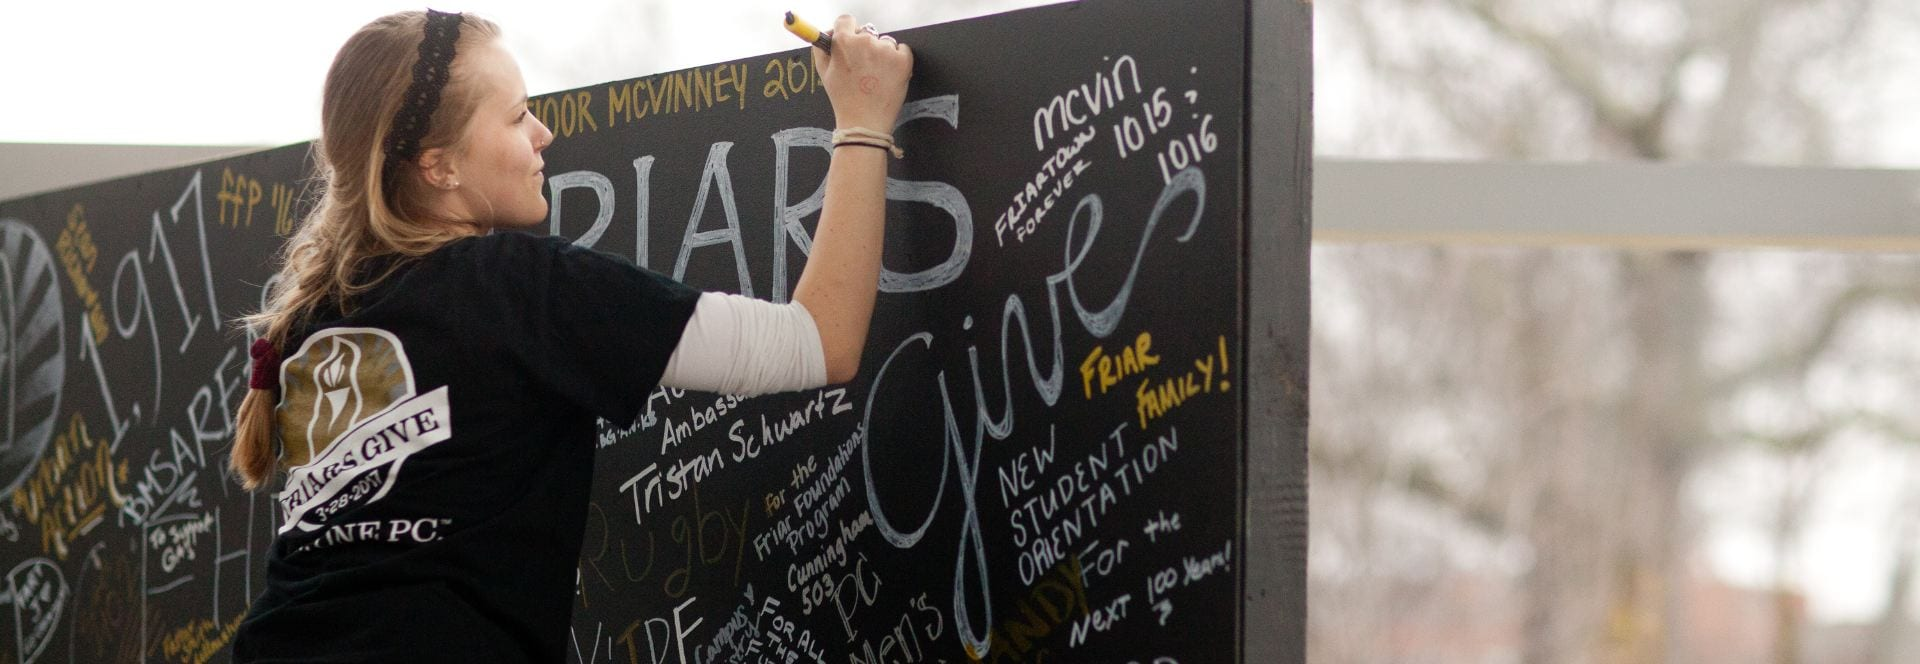 Friars Give 2017 Giving Day , writing wall, students